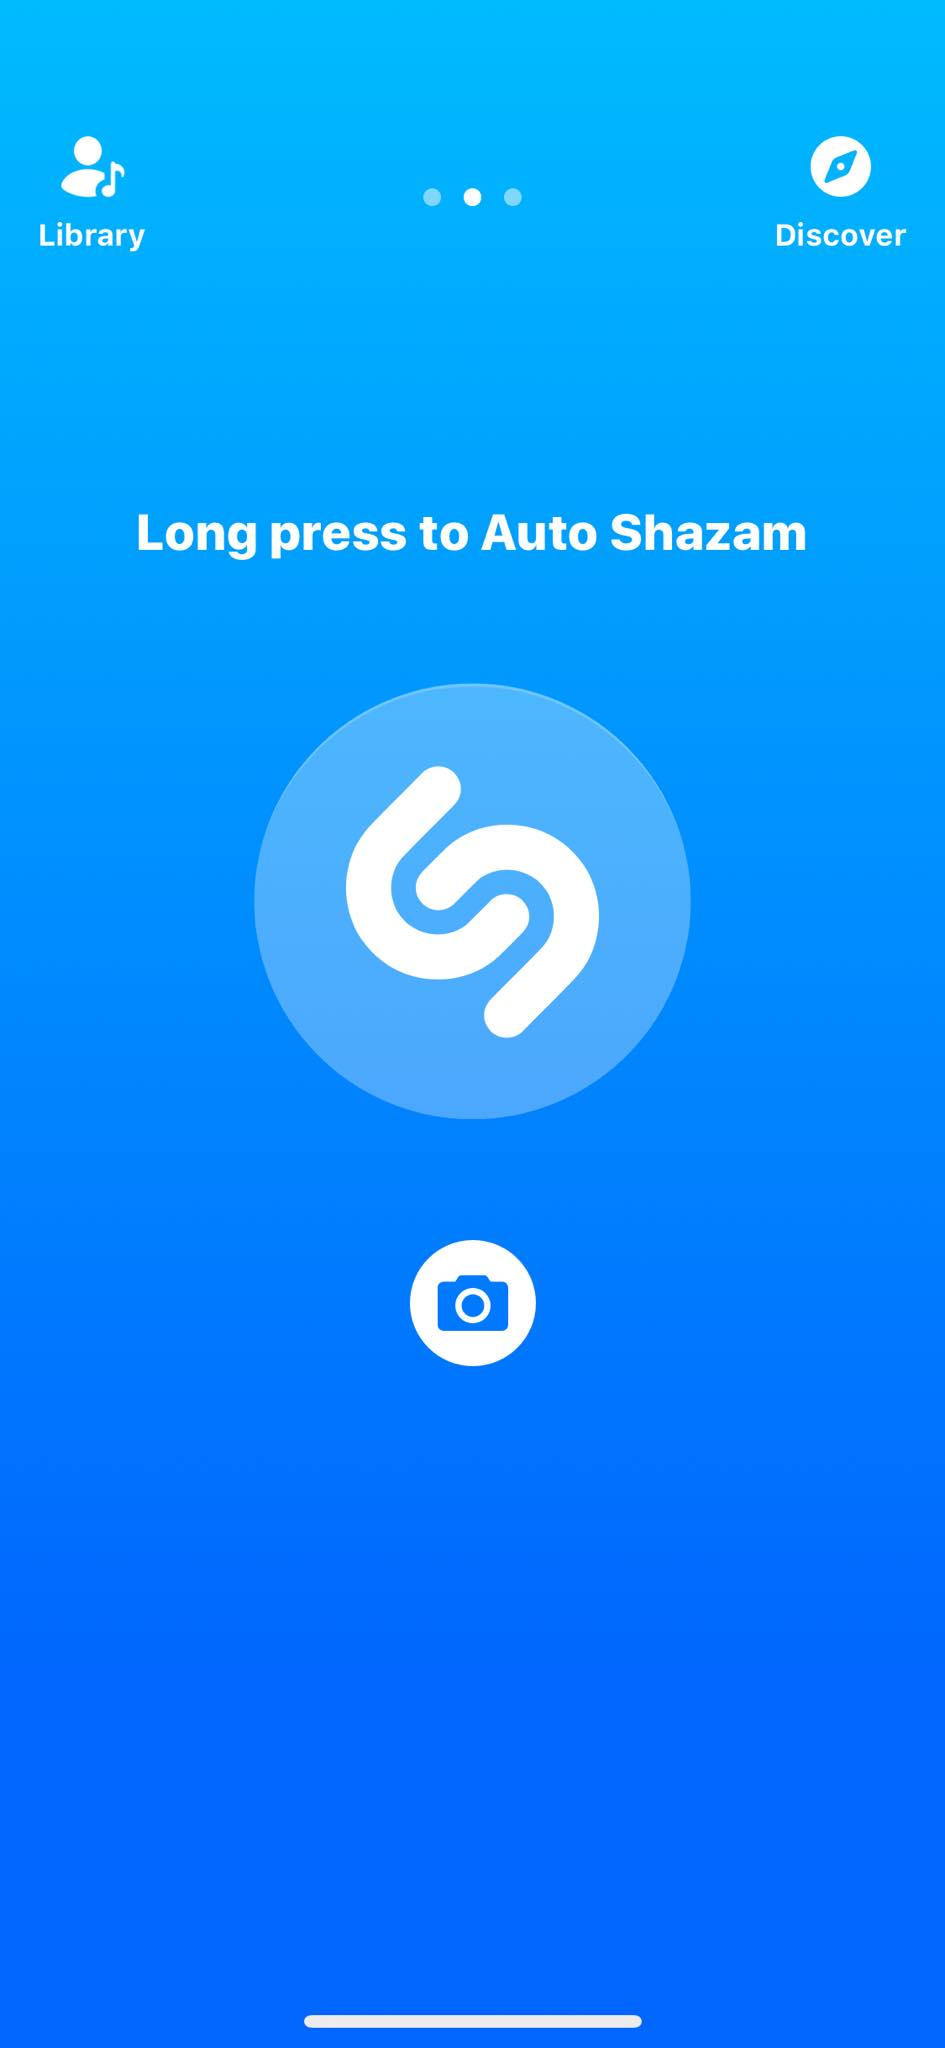 Auto Shazam on iOS by Shazam